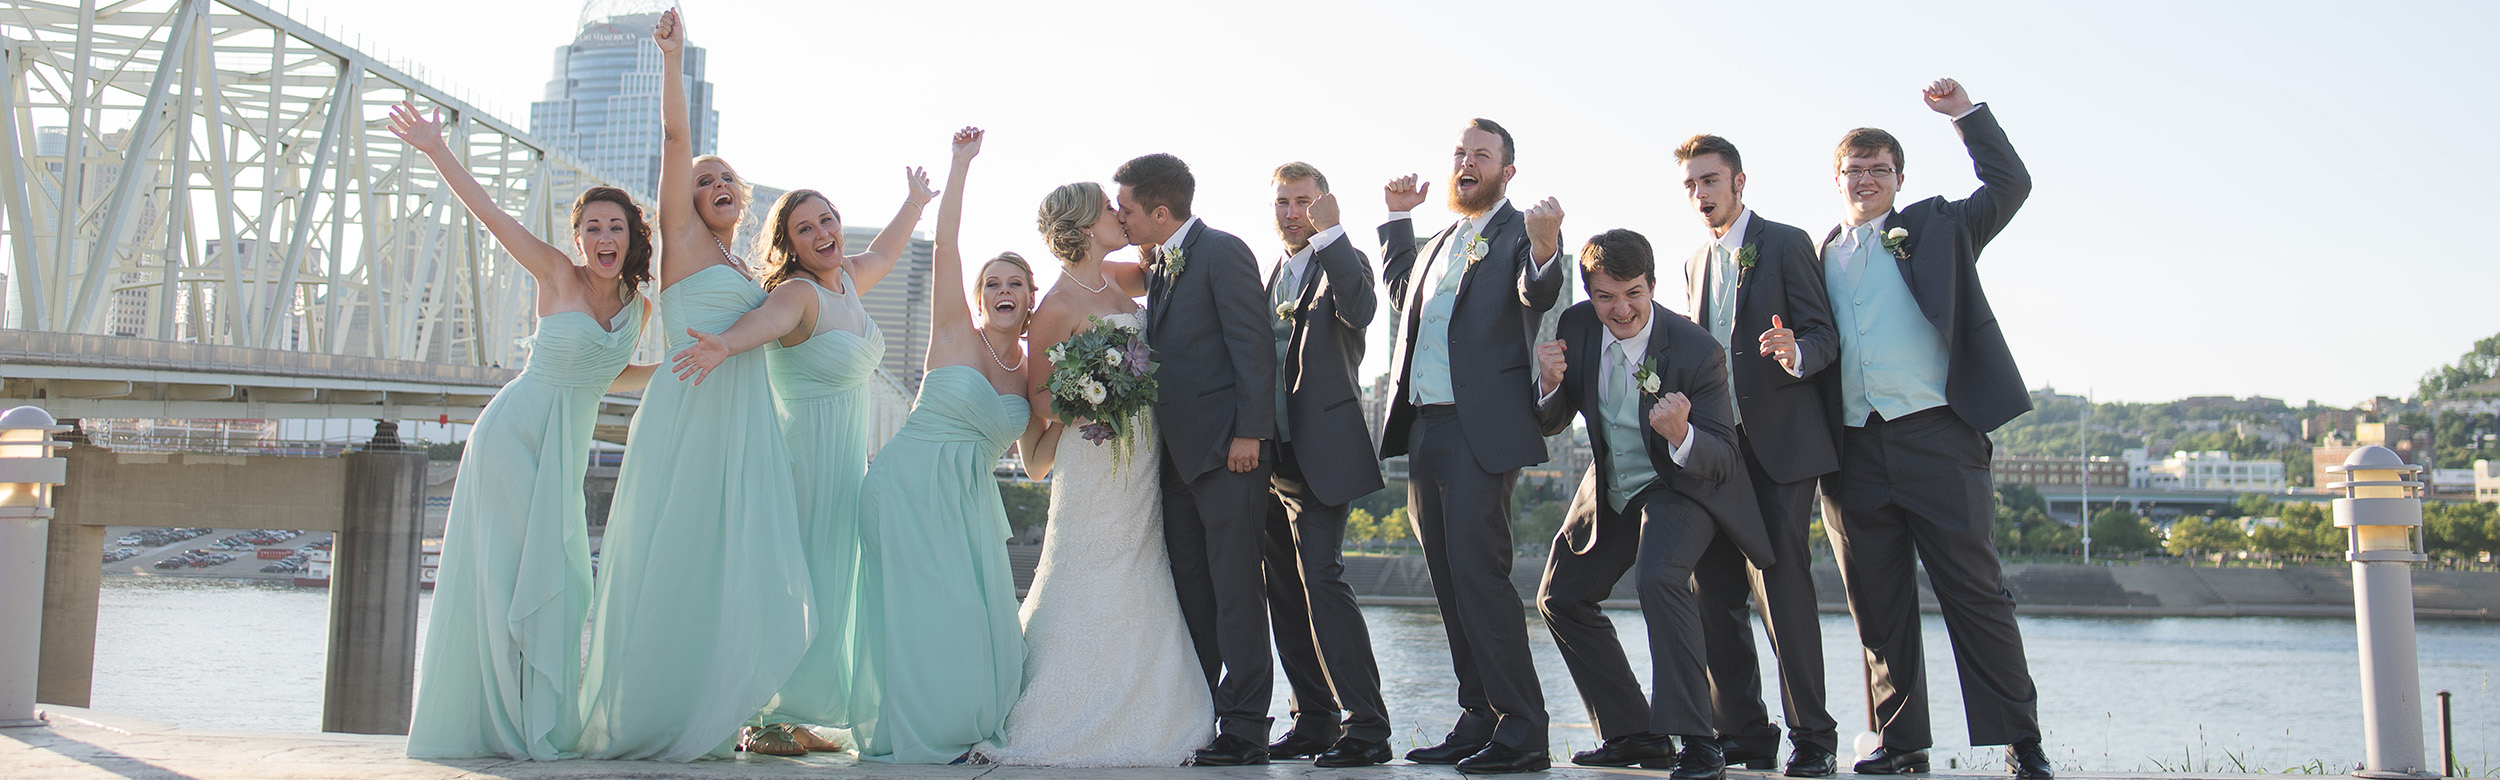 Wide images_0017_Bridal Party FULL-37.jpg